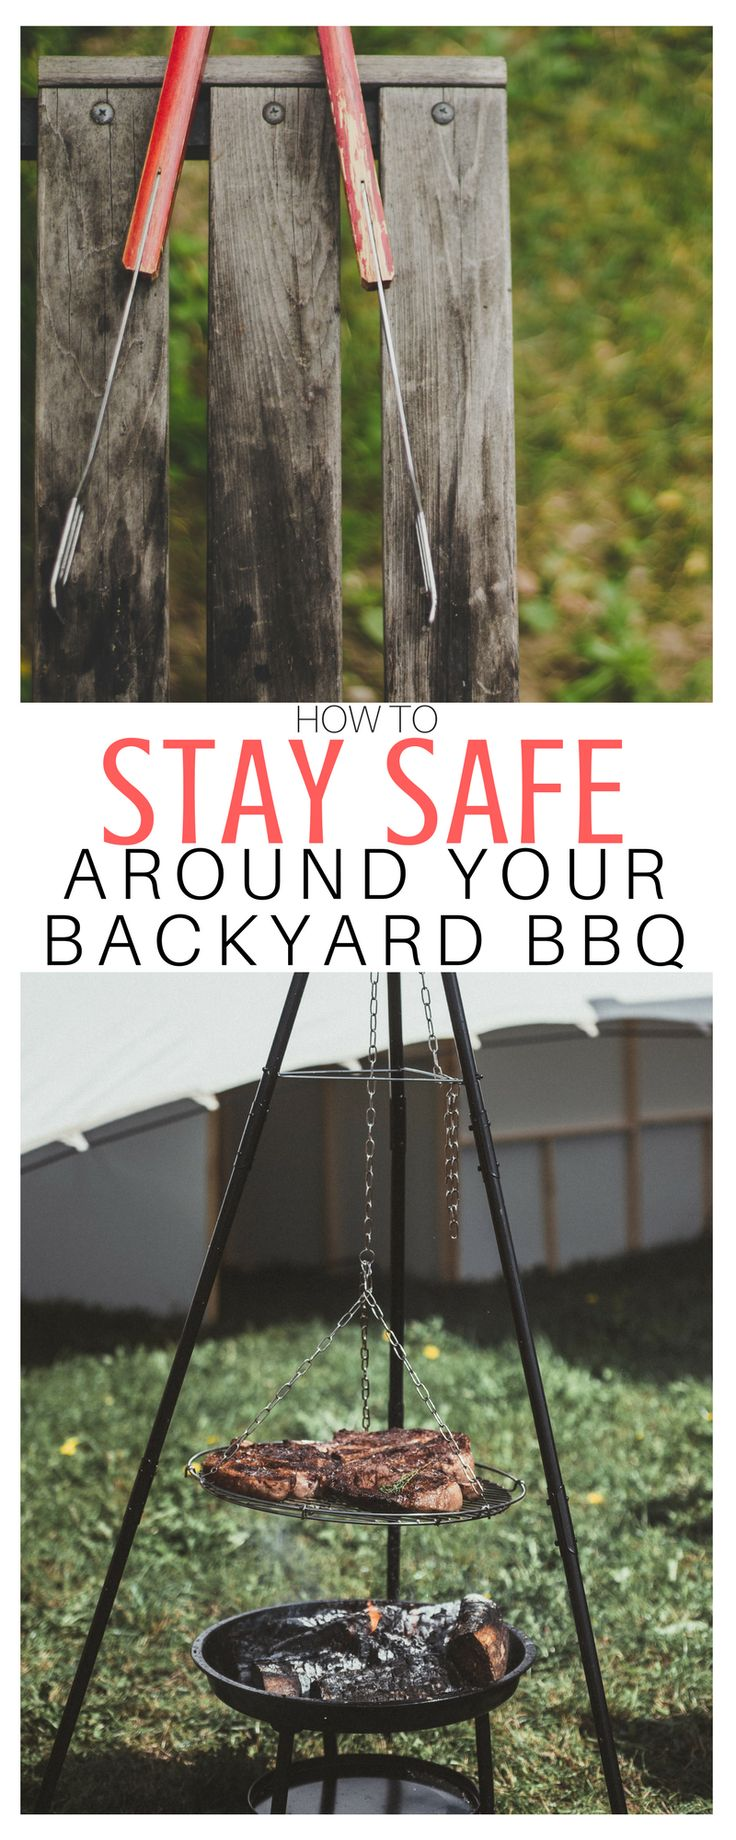 Before you fire up the grill or BBQ this summer make sure you are up to date with your safety! Gas BBQ Recipes | Gas Barbecue Recipes | Gas Smoker Recipes | Gas Grill Recipes | Best Gas Grill Recipes | Best Gas Smoker Recipes | Best Gas BBQ Recipes | Best Gas Barbecue Recipes | Best BBQ Food | BBQ Inspiration | Barbecue Inspiration | Grilling Inspiration | How To | Safety Tips | Fire | Fire Safety | #bbq #barbecue #grilling #grill #bbqlife…